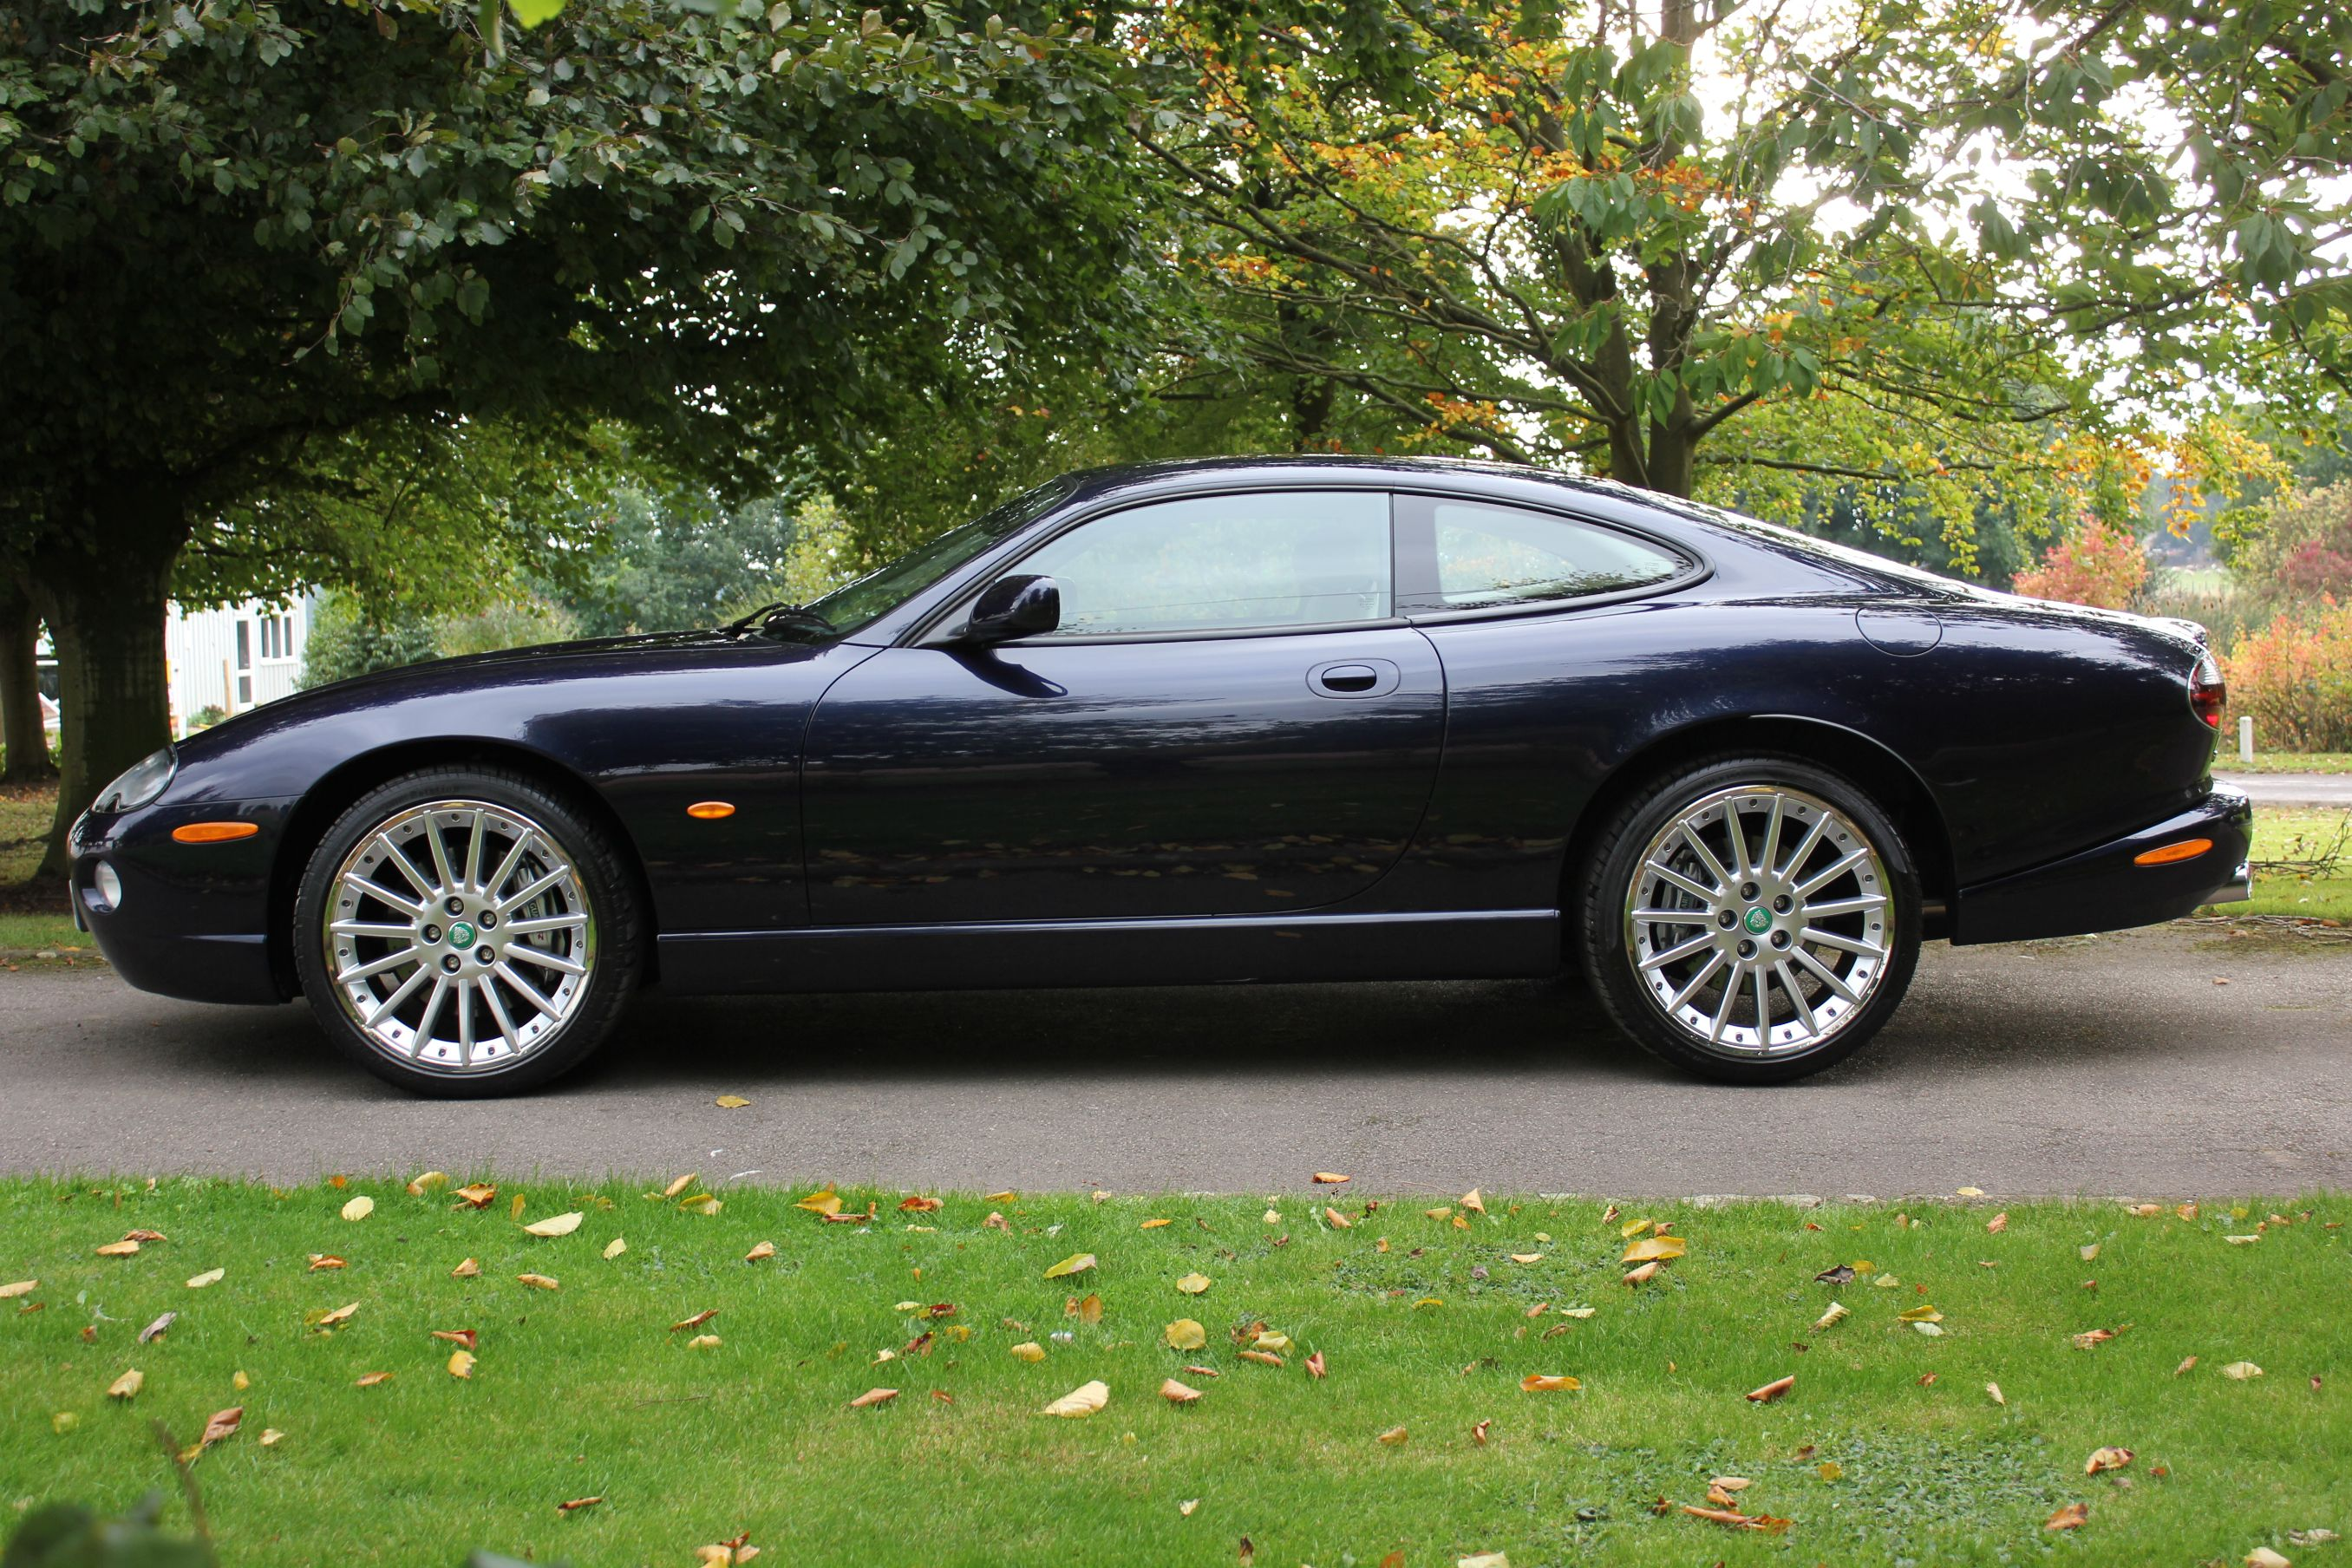 Jaguar XK8 4.2S Coupe   Shmoo Automotive Ltd